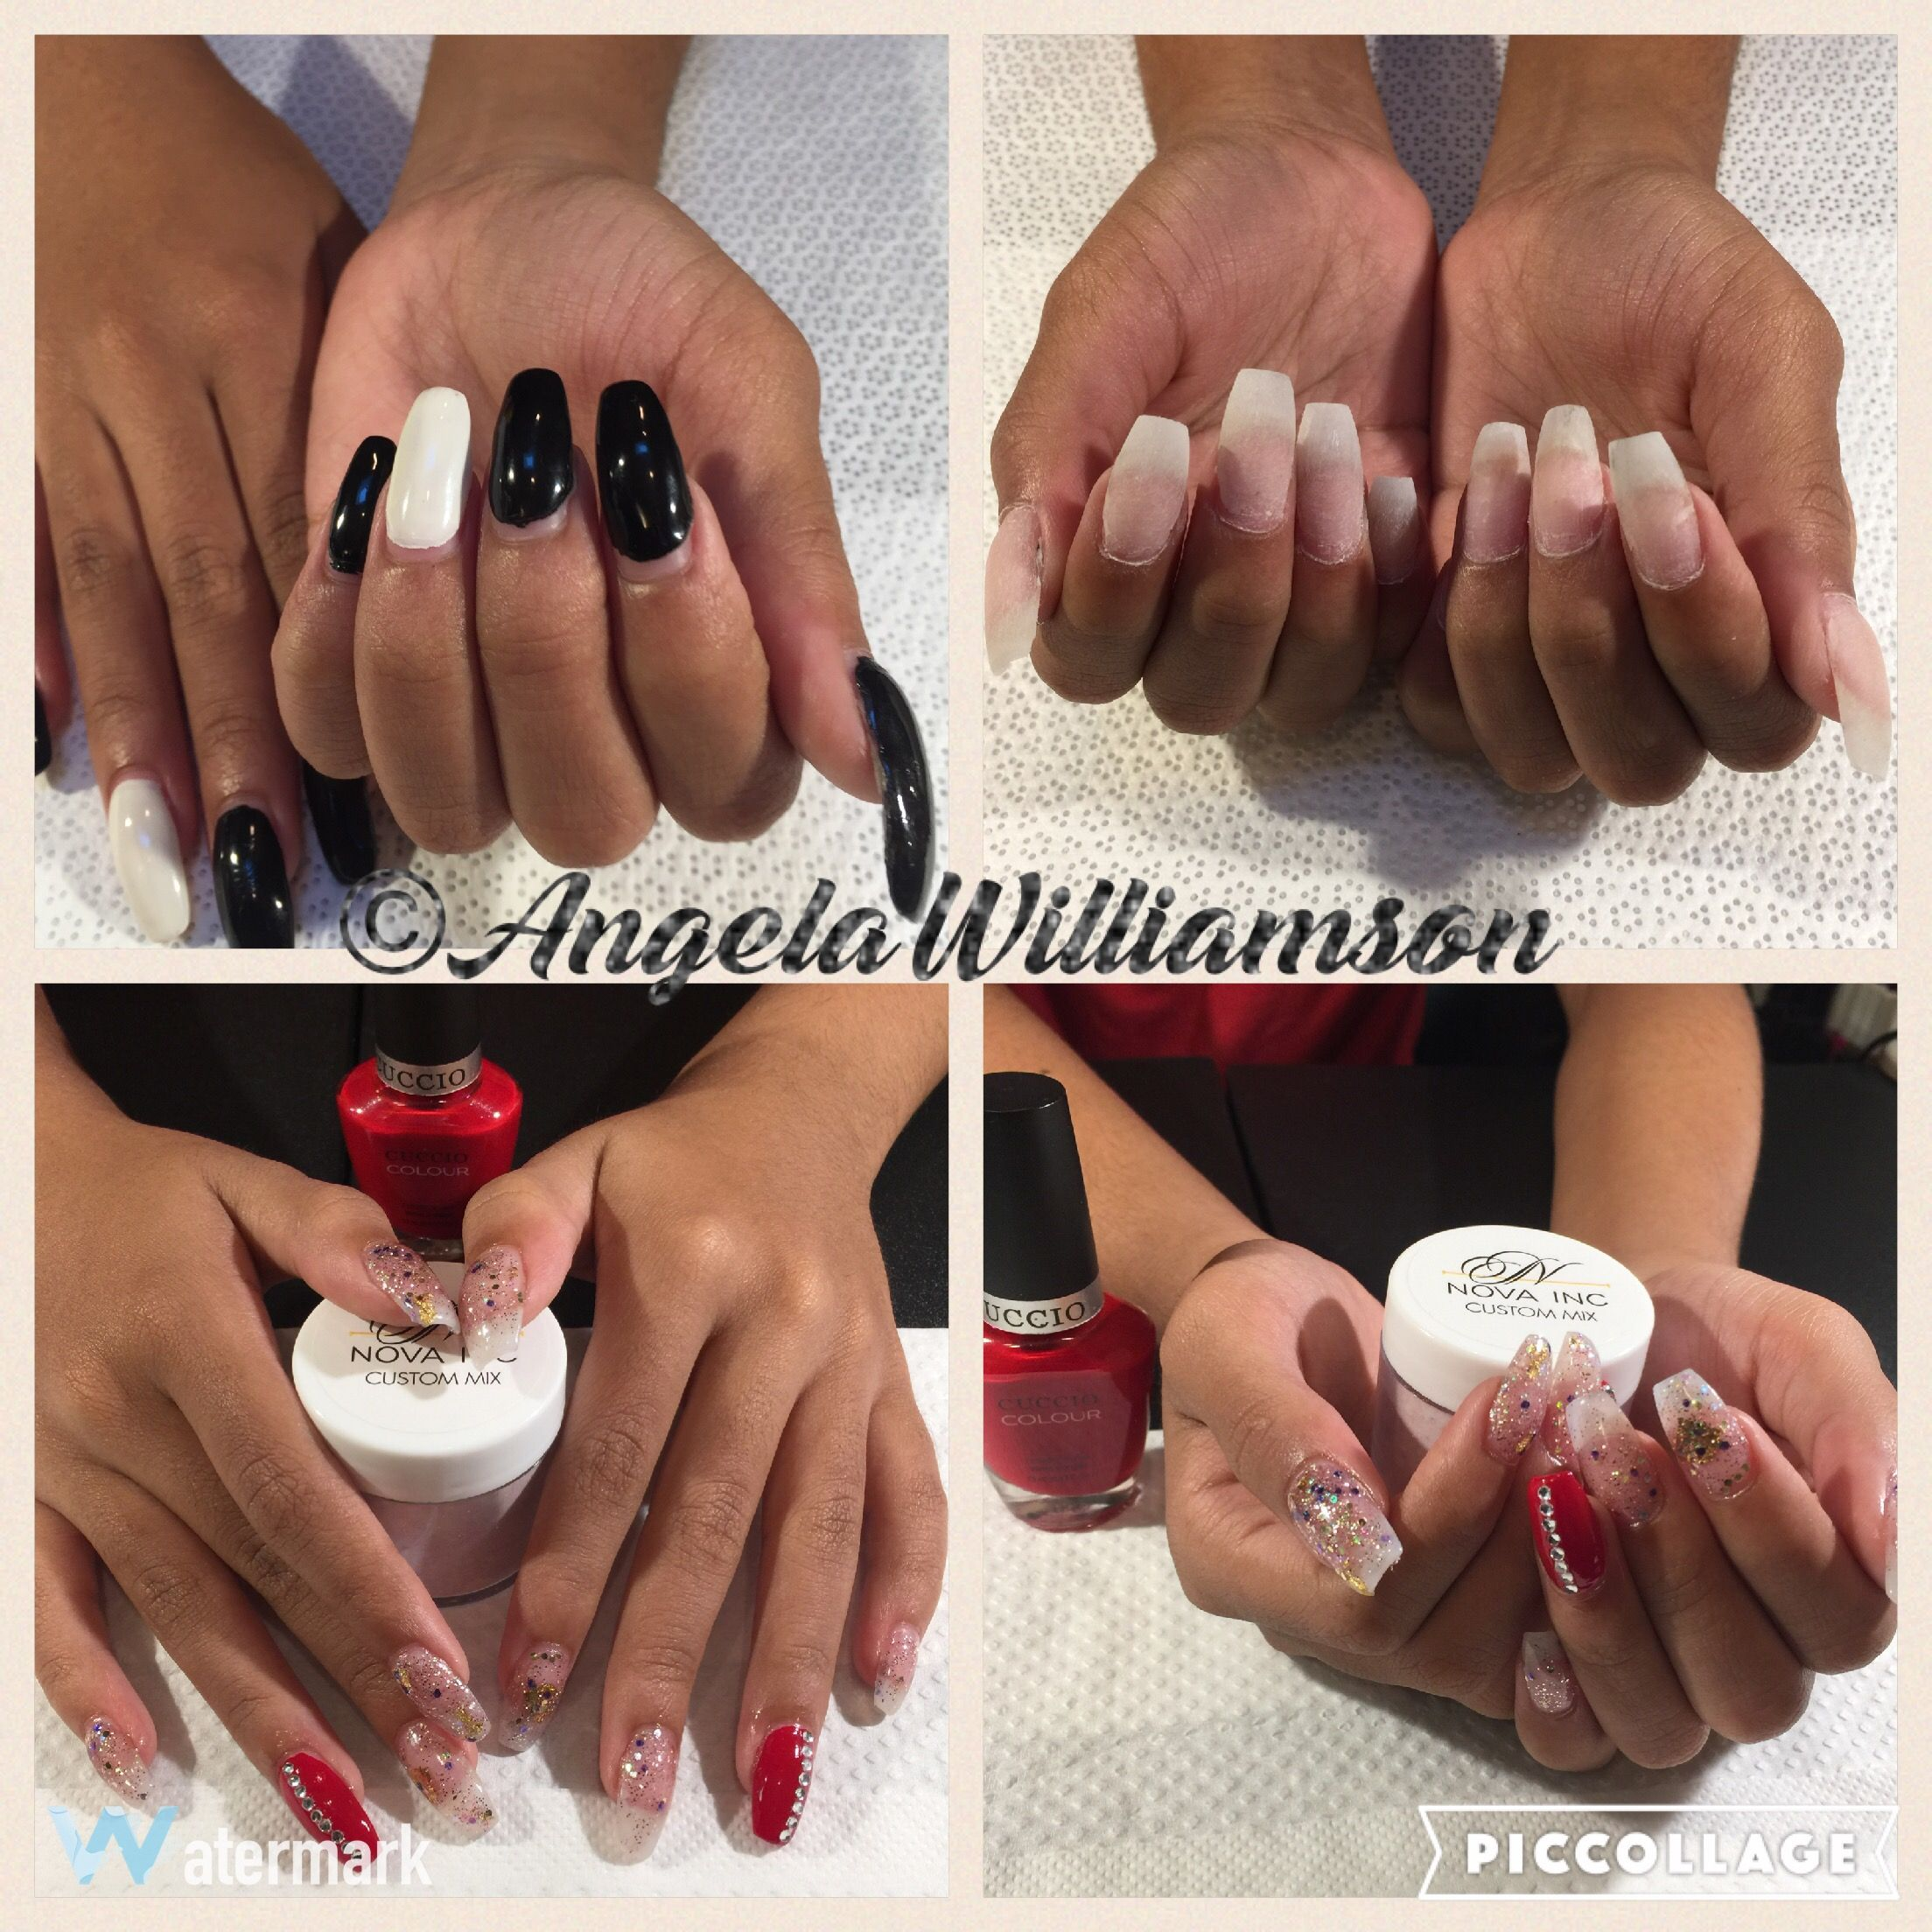 Acrylic Rebalance With Nova Nails Inc Custom Mix Sweet Love And Cuccio Polish A Kiss In Paris Nailtchlife Ilovewhatido Itsapion